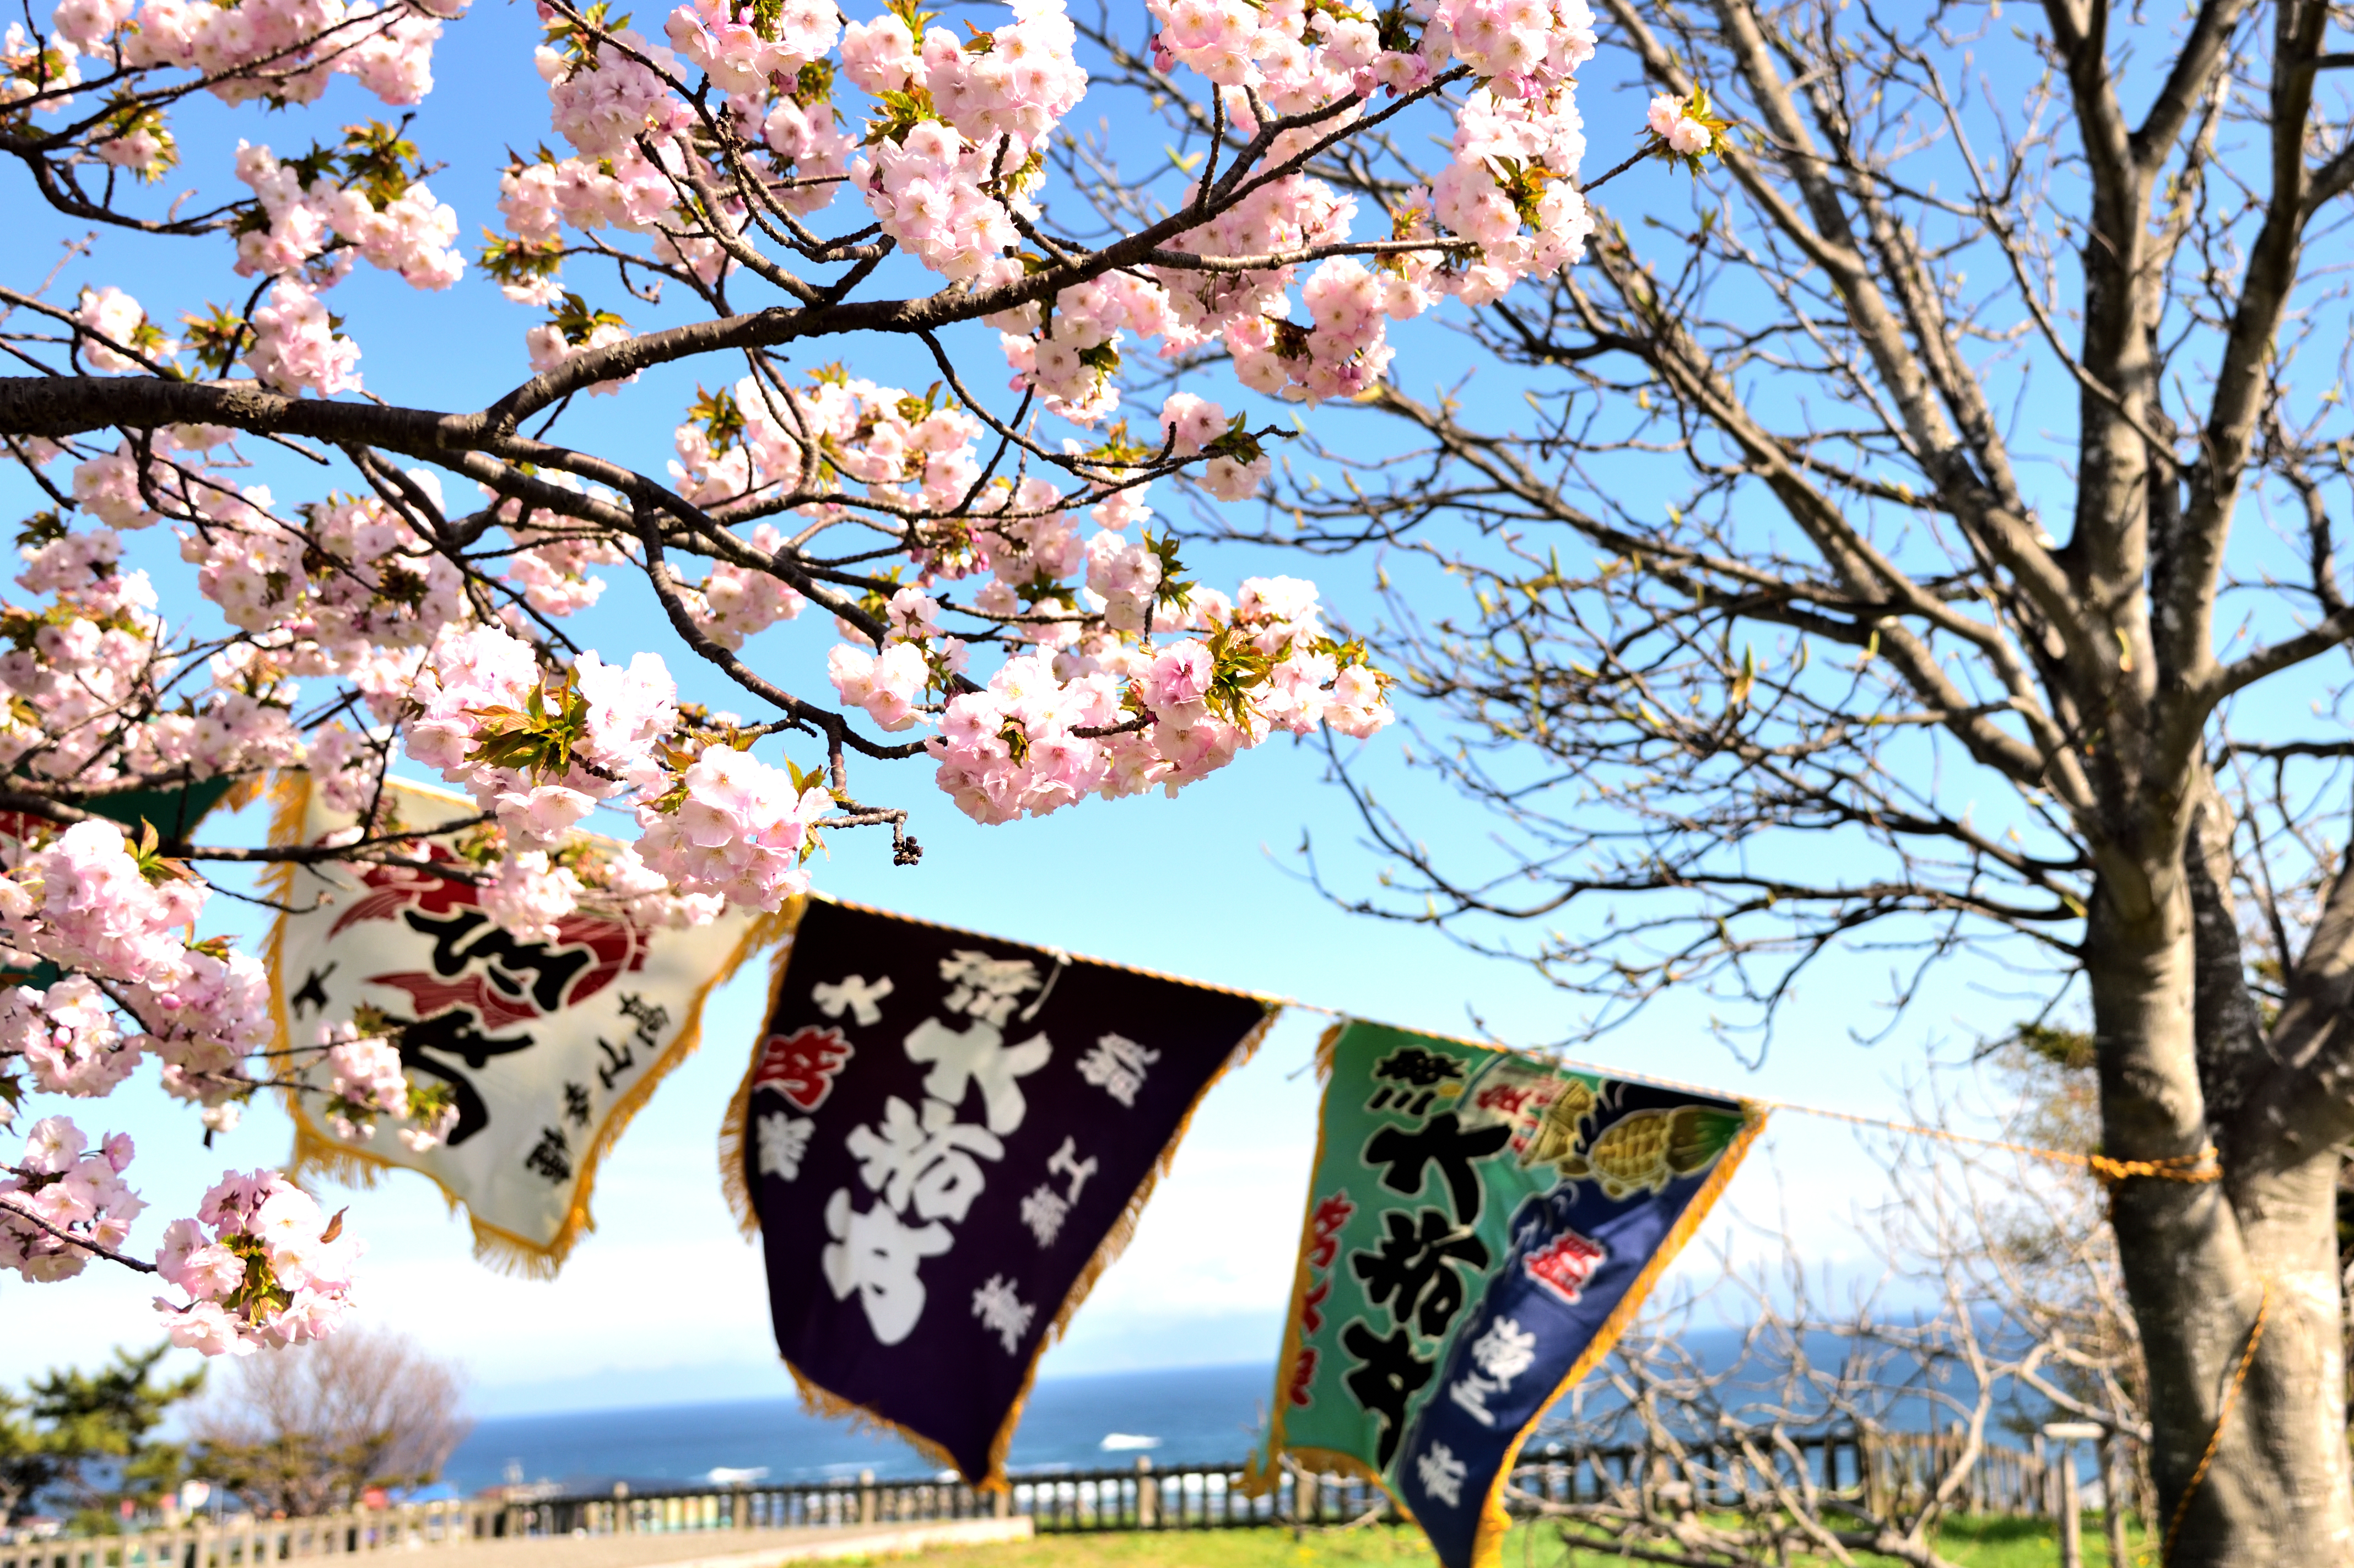 Fishing flag and cherry blossoms in Matsumae park